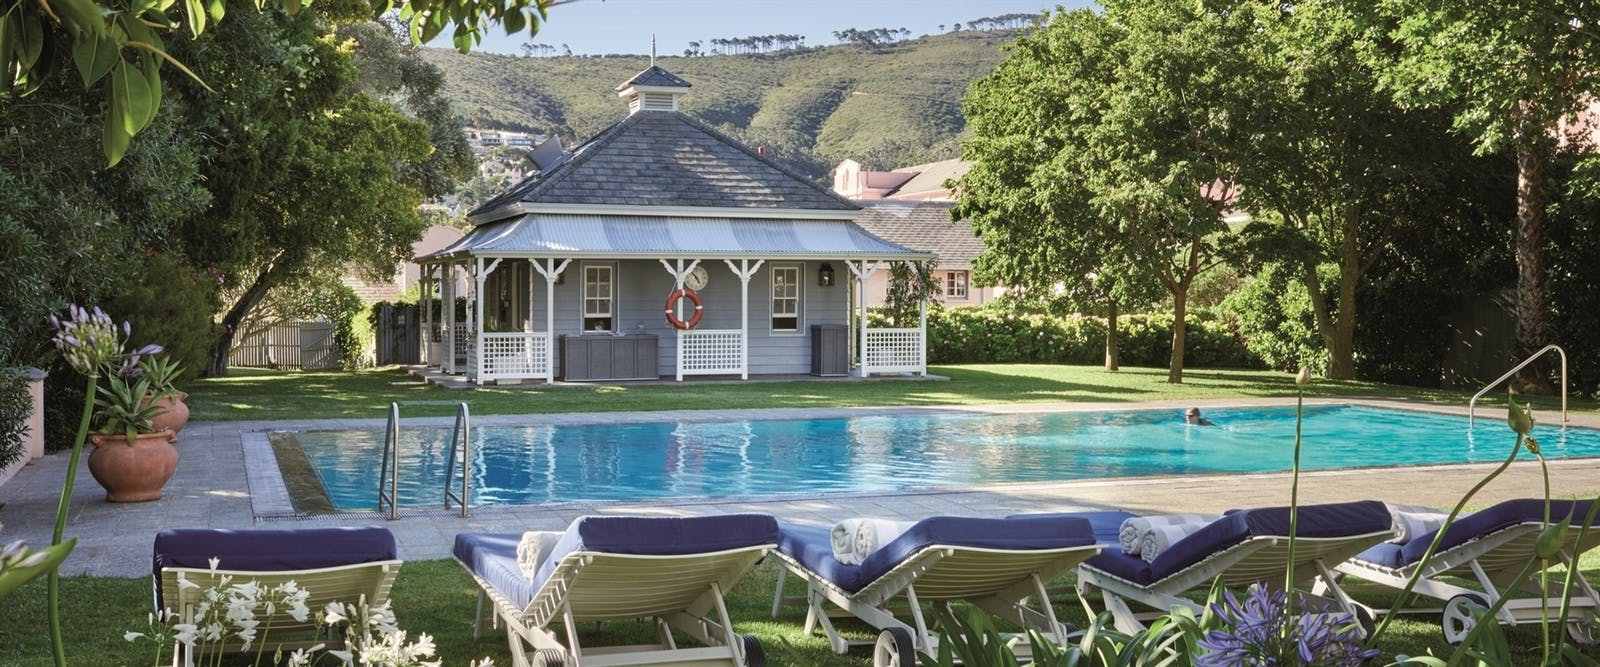 Pool at Belmond Mount Nelson Hotel, Cape Town